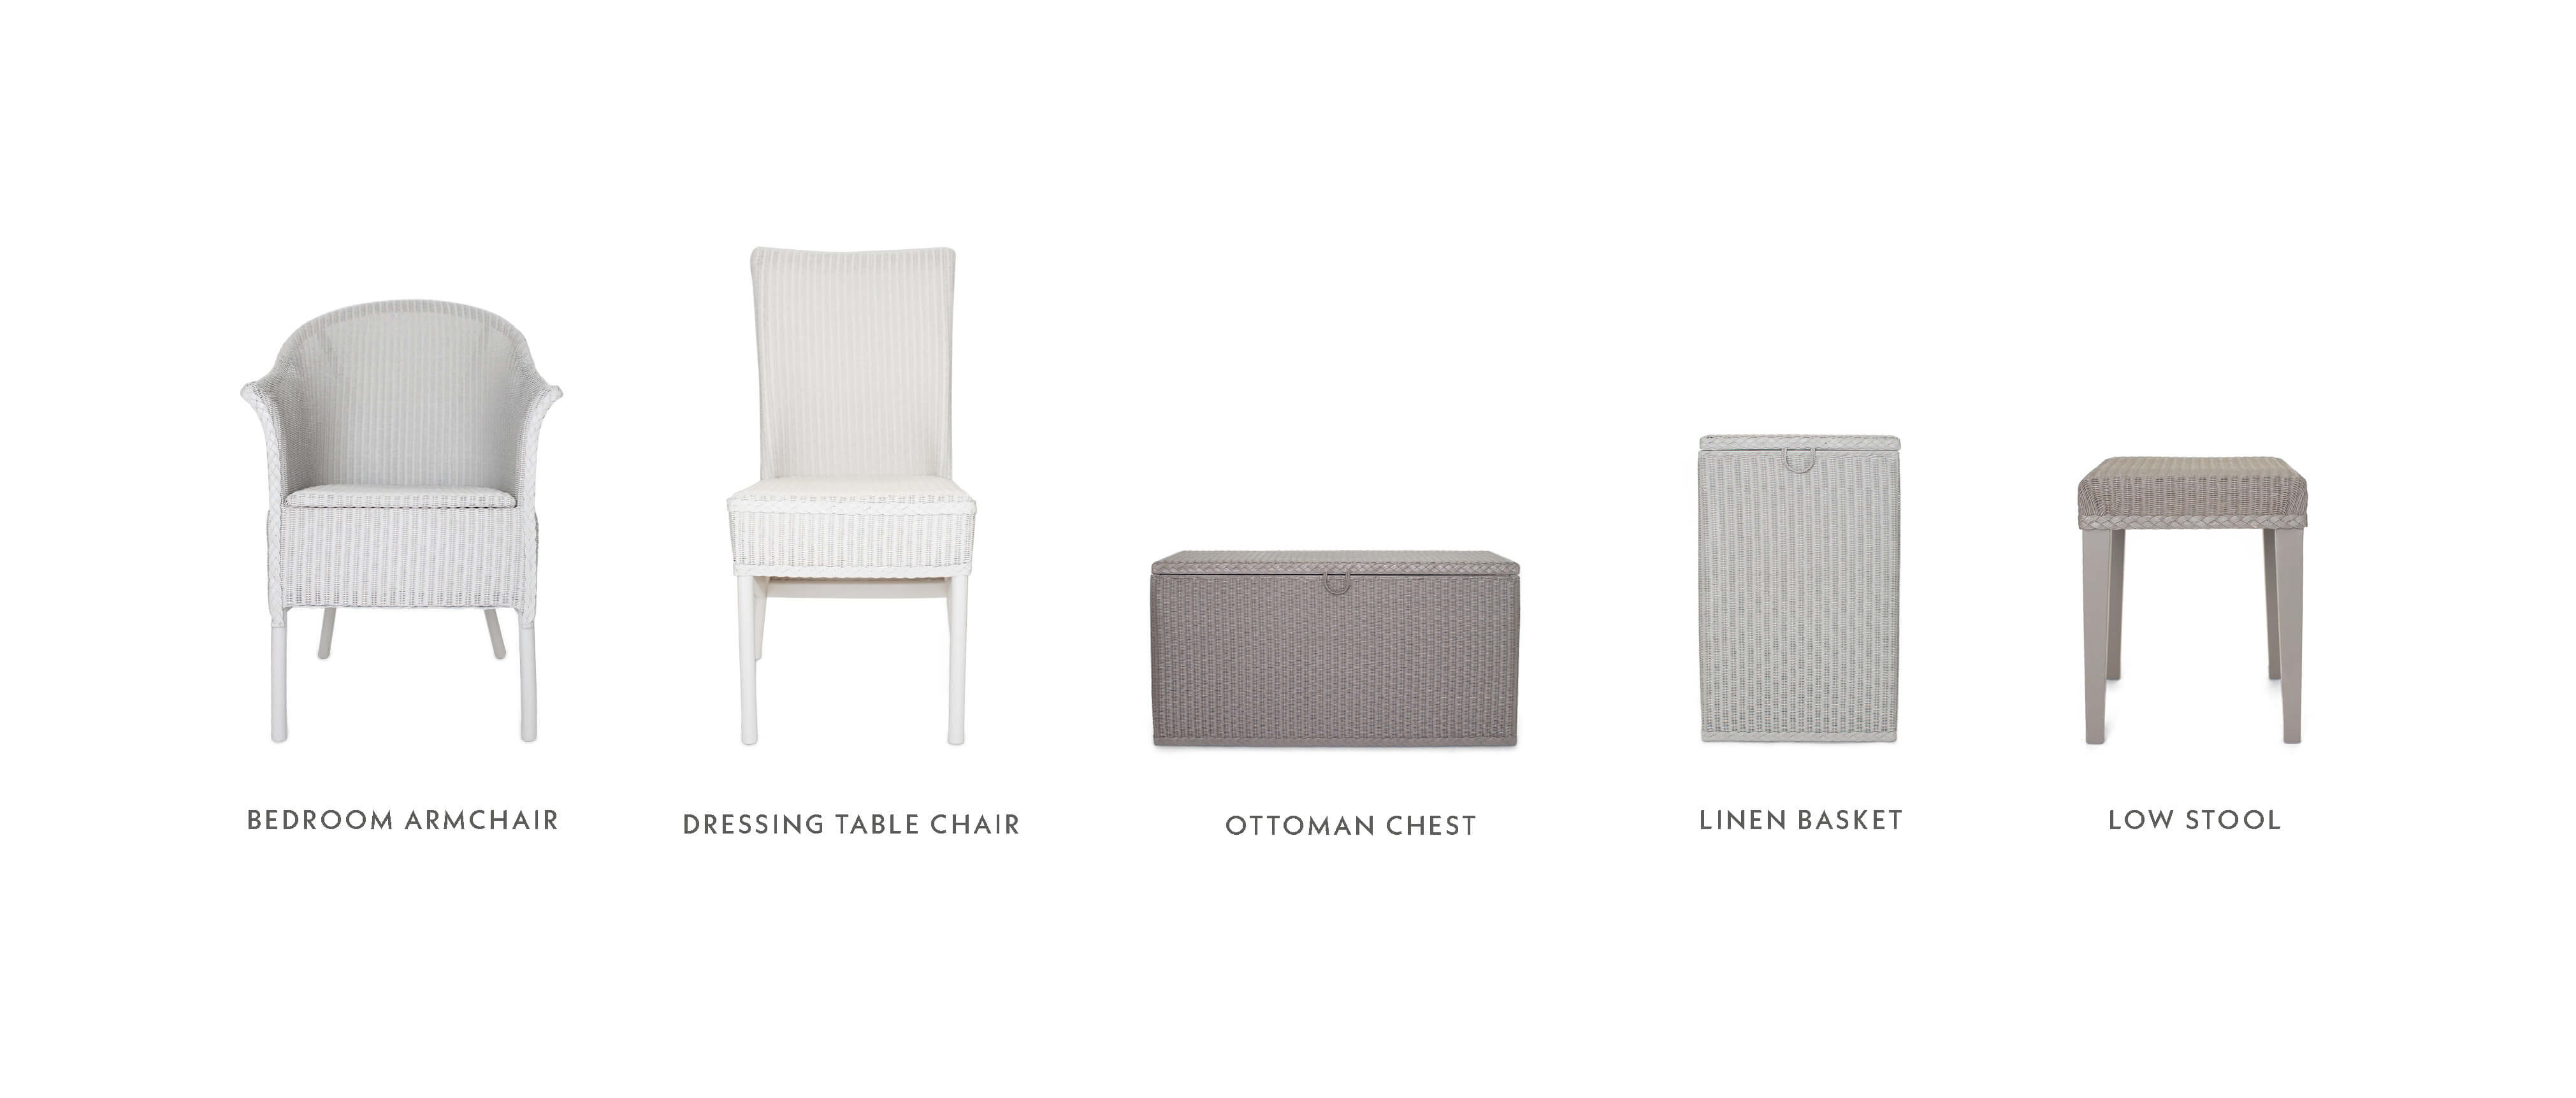 Lloyd Loom furniture collection, armchair, ottoman chest, linen basket, low stool